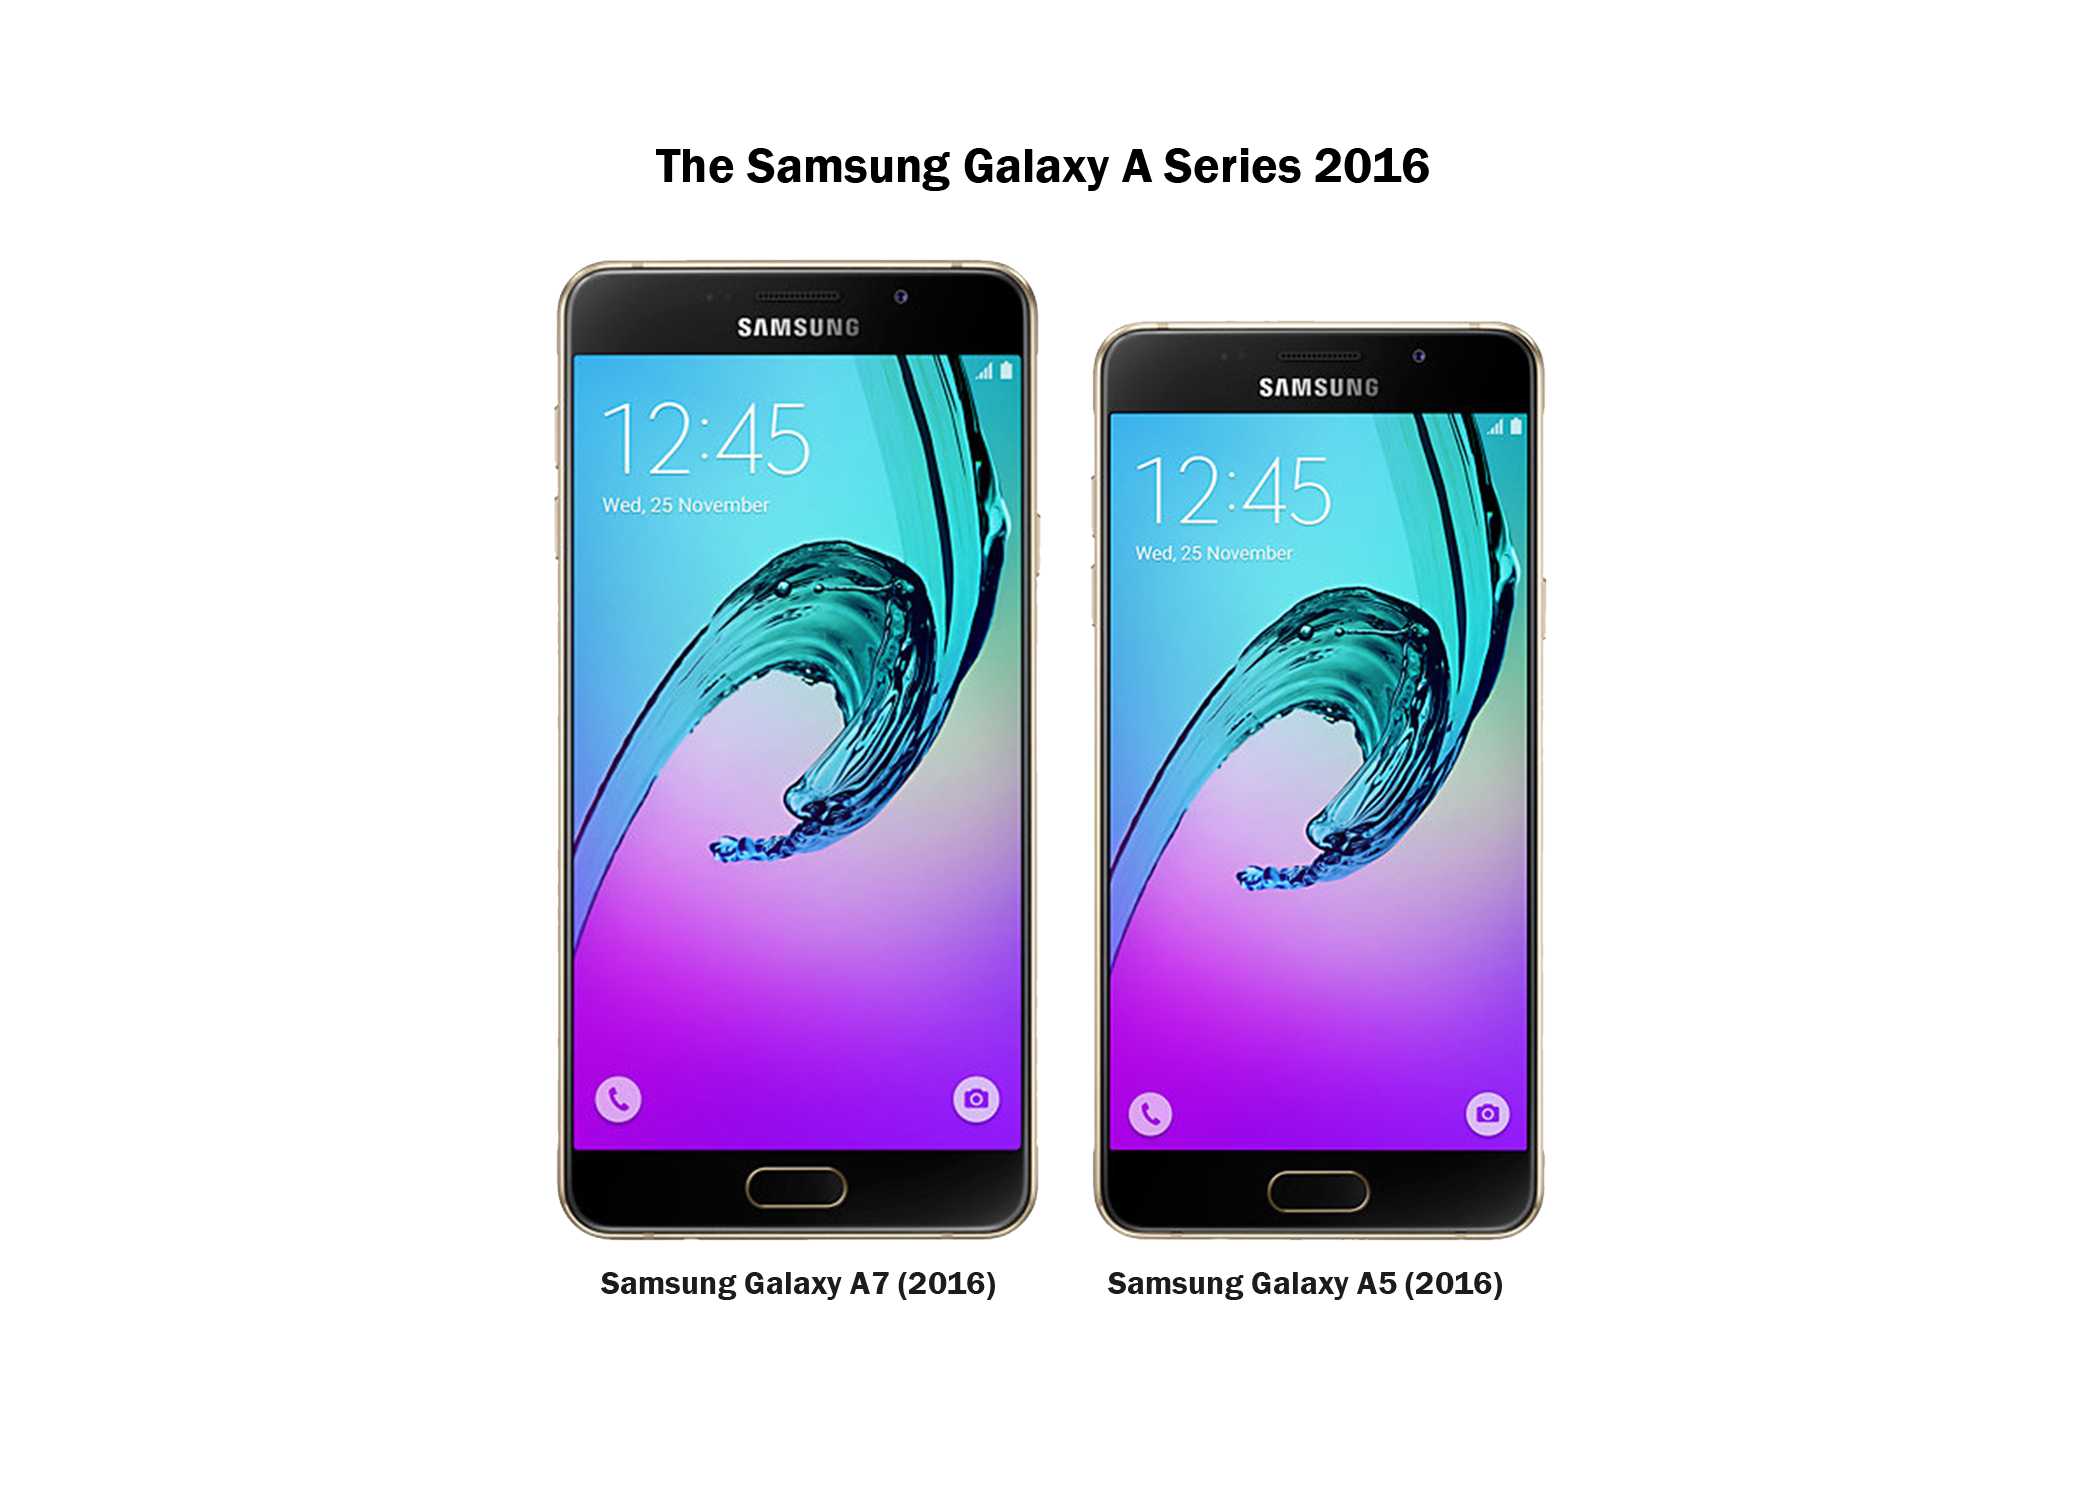 samsung galaxy a5 galaxy a7 2016 launched in nepal gadgetbyte. Black Bedroom Furniture Sets. Home Design Ideas